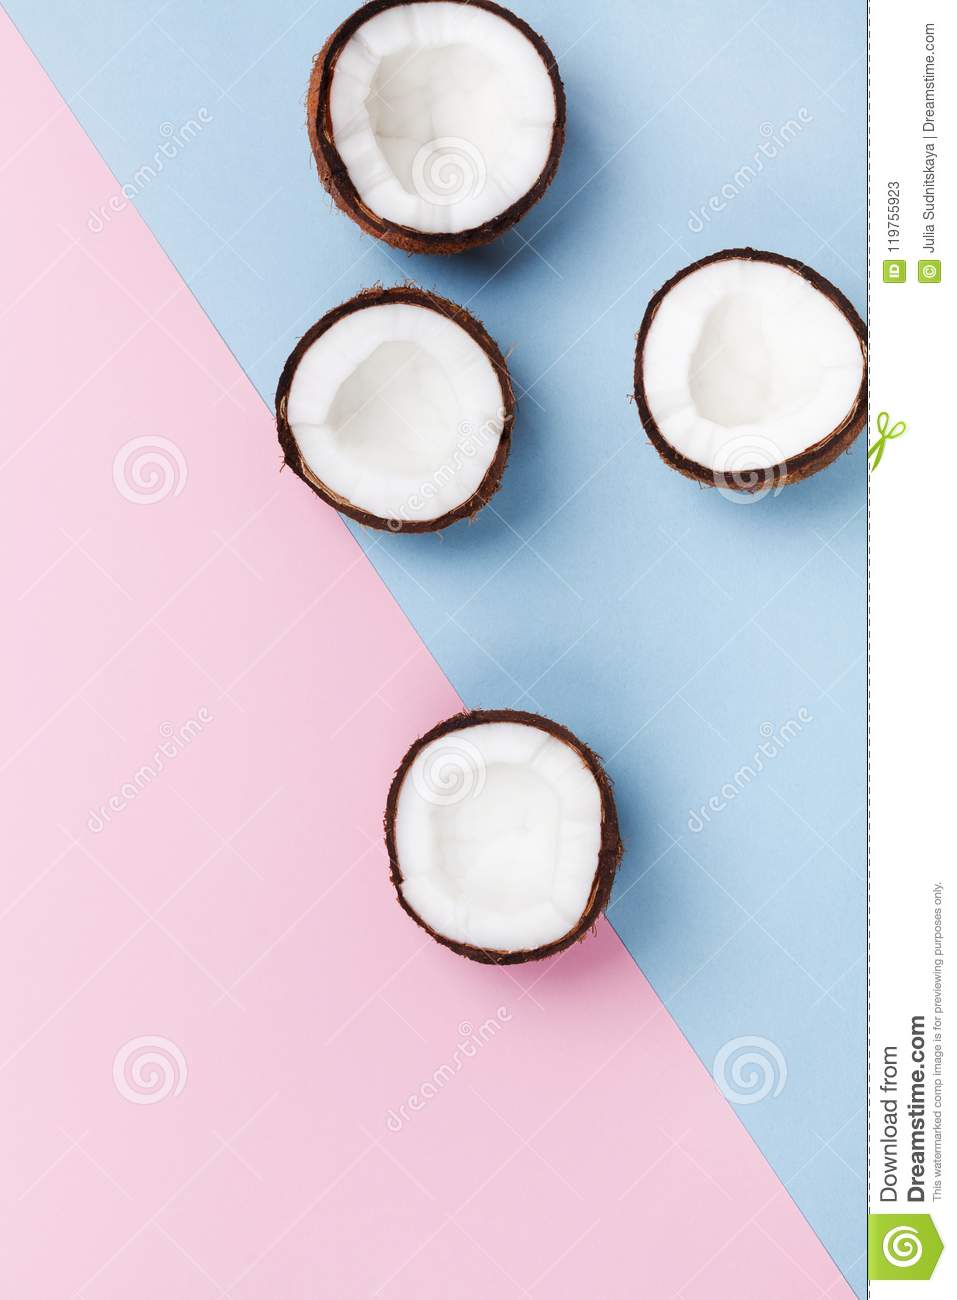 Creative summer pattern for modern design. Coconut fruit half on minimal pastel background top view. Flat lay.